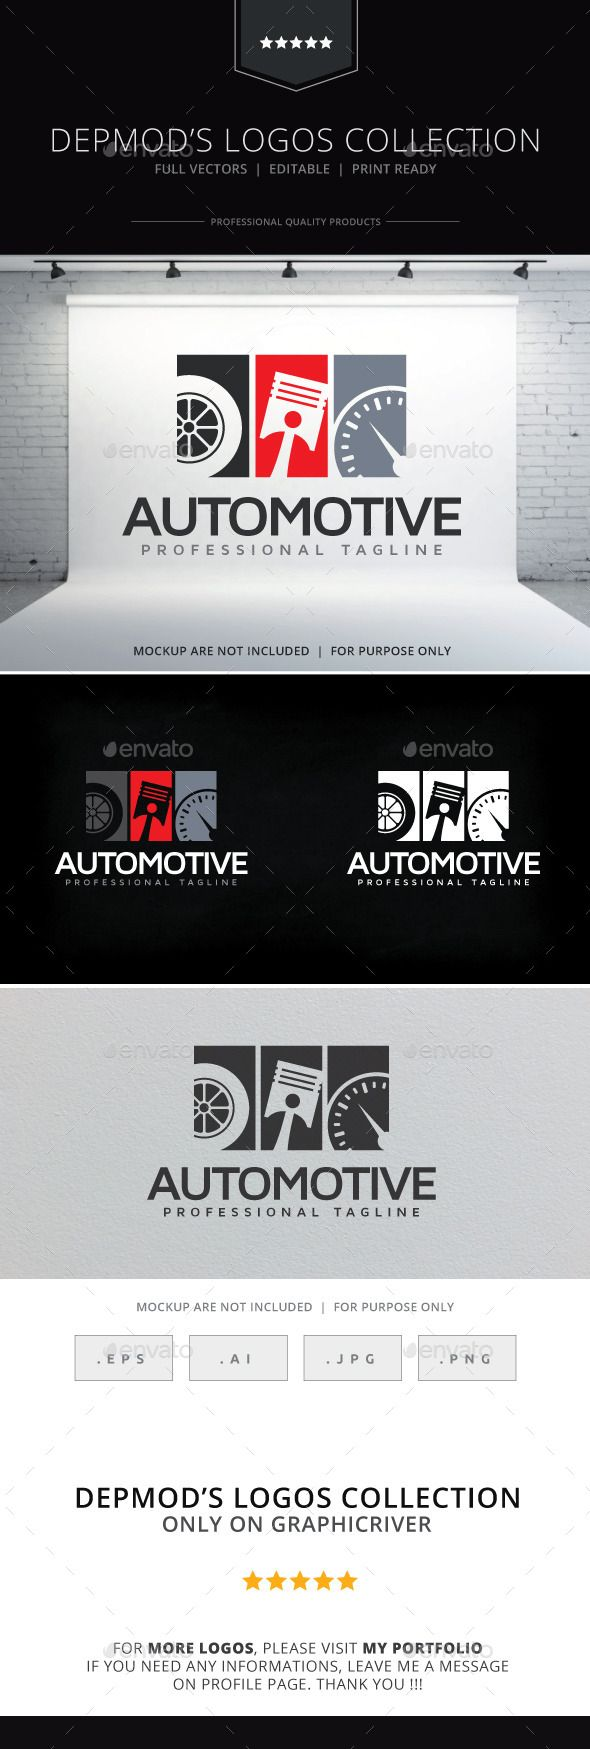 Automotive Logo — Transparent PNG #check up #car painting • Available here → https://graphicriver.net/item/automotive-logo/10255304?ref=pxcr